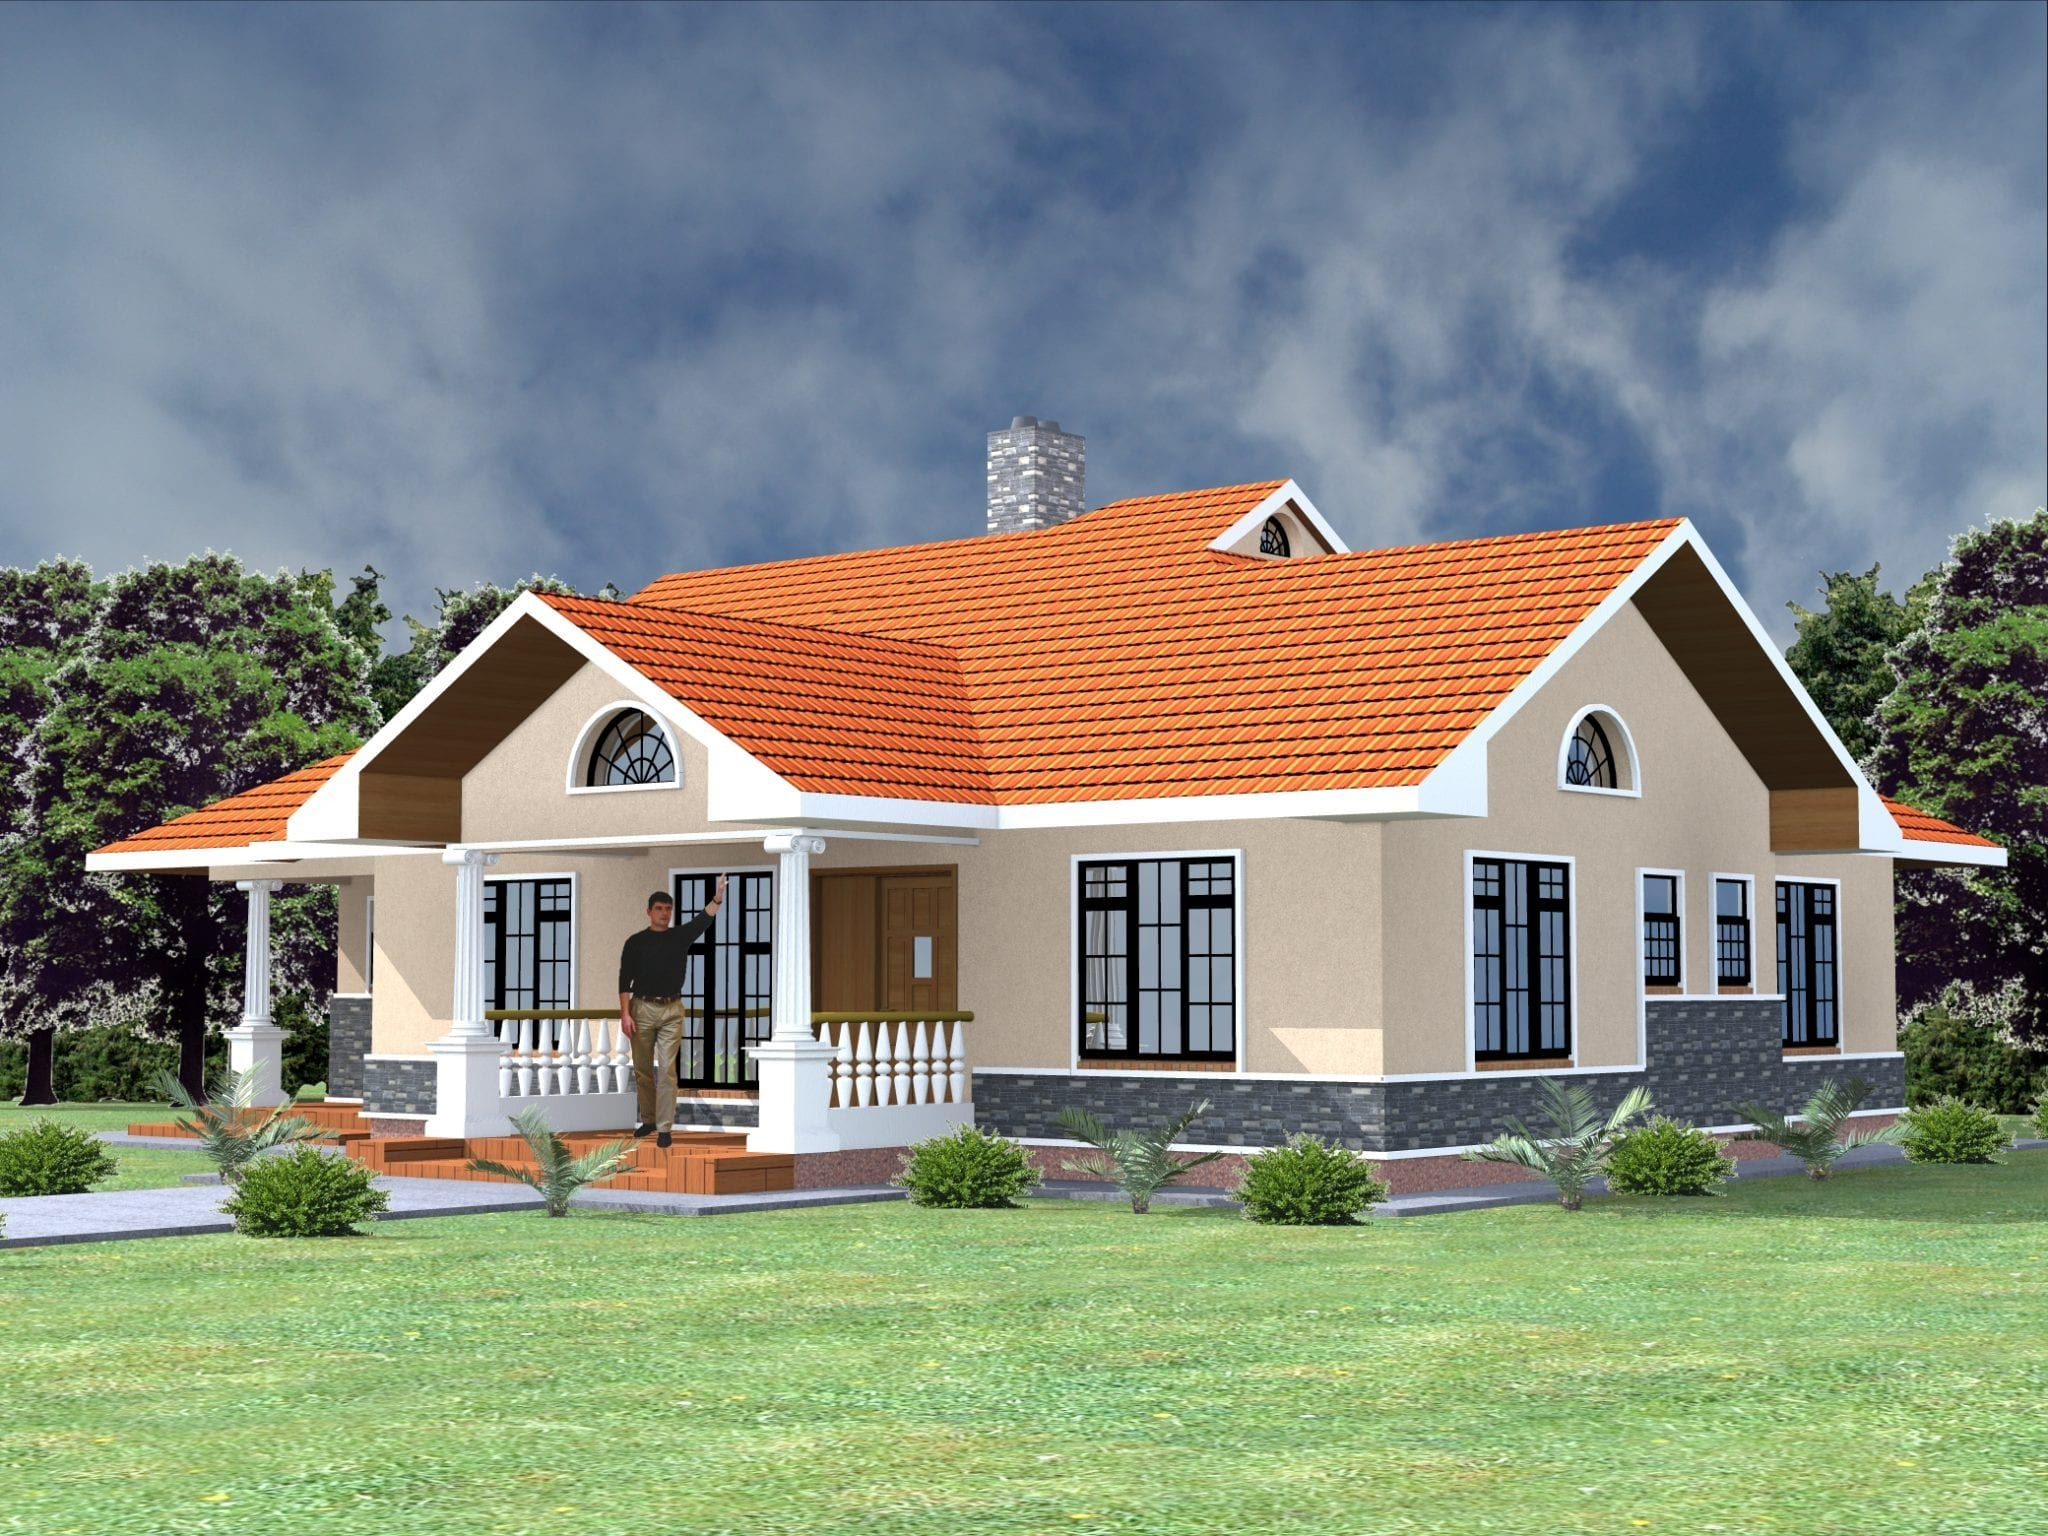 Three Bedroom Bungalow House Plans In Kenya Hpd Consult Bungalow House Plans Unique House Plans Beautiful House Plans